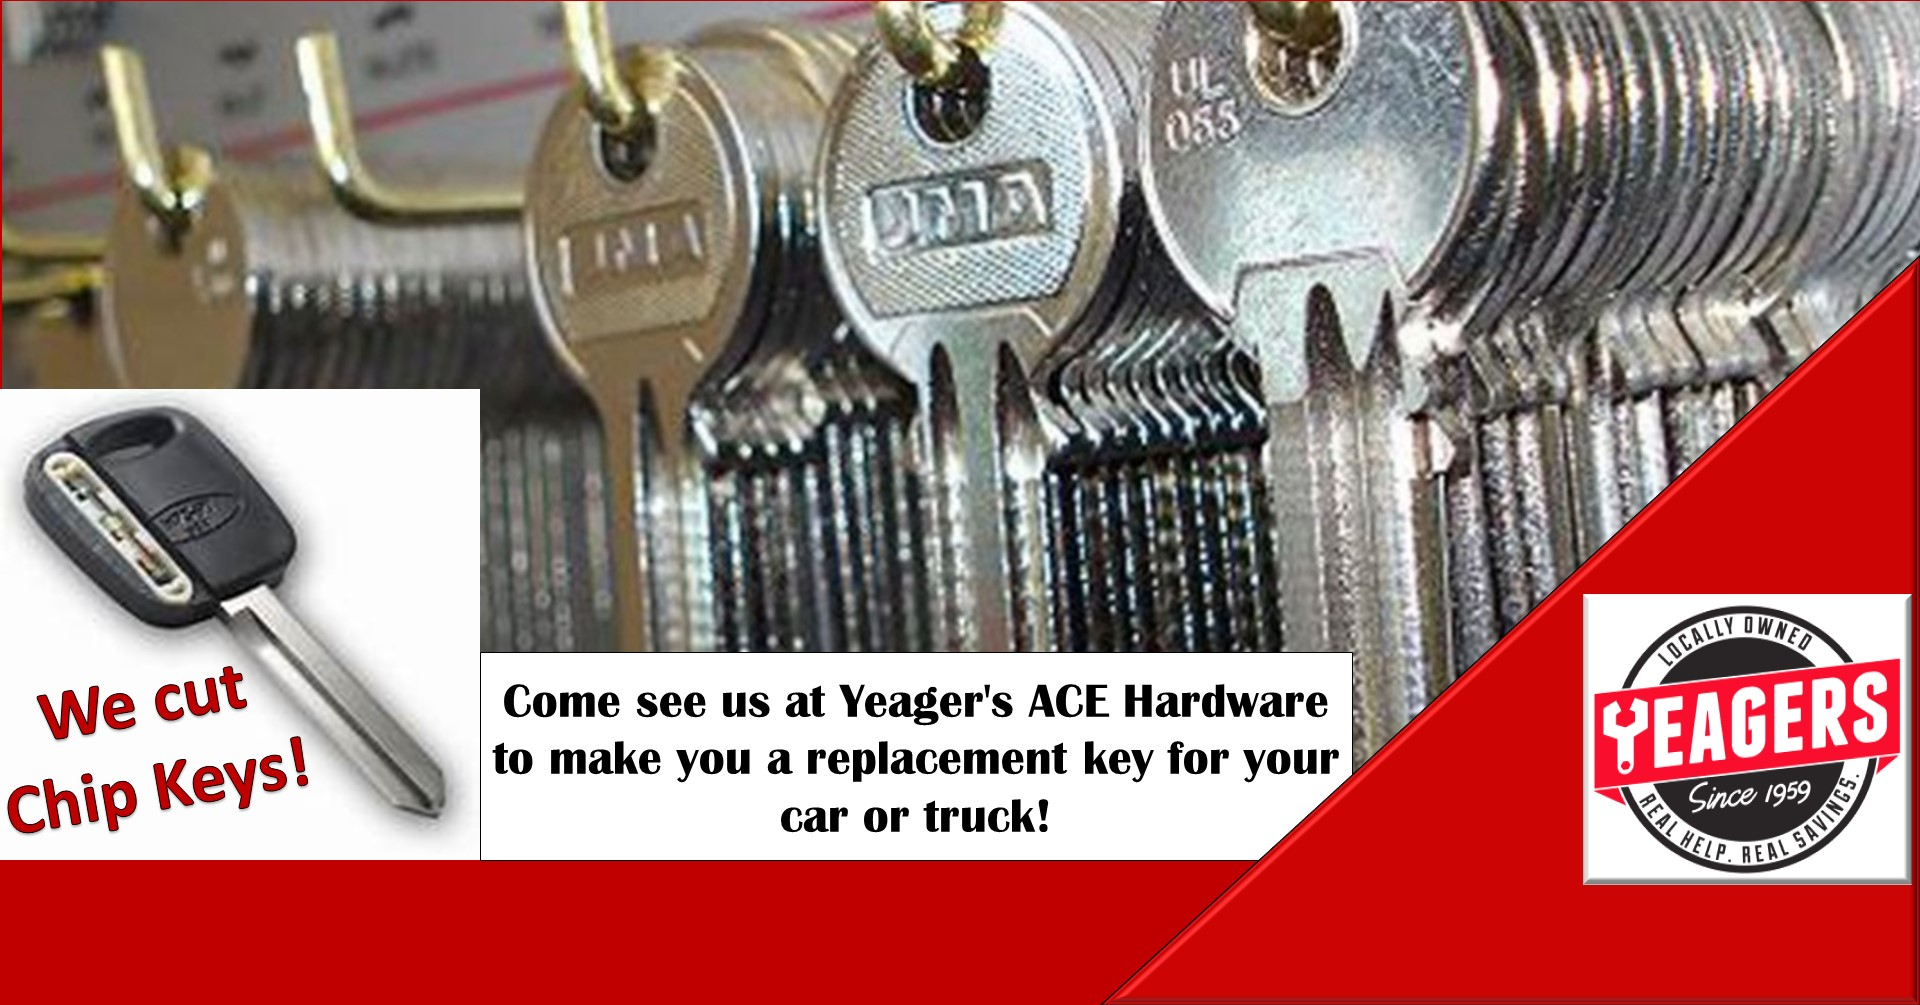 Need a duplicate key for your car or truck? YEAGERS can help!